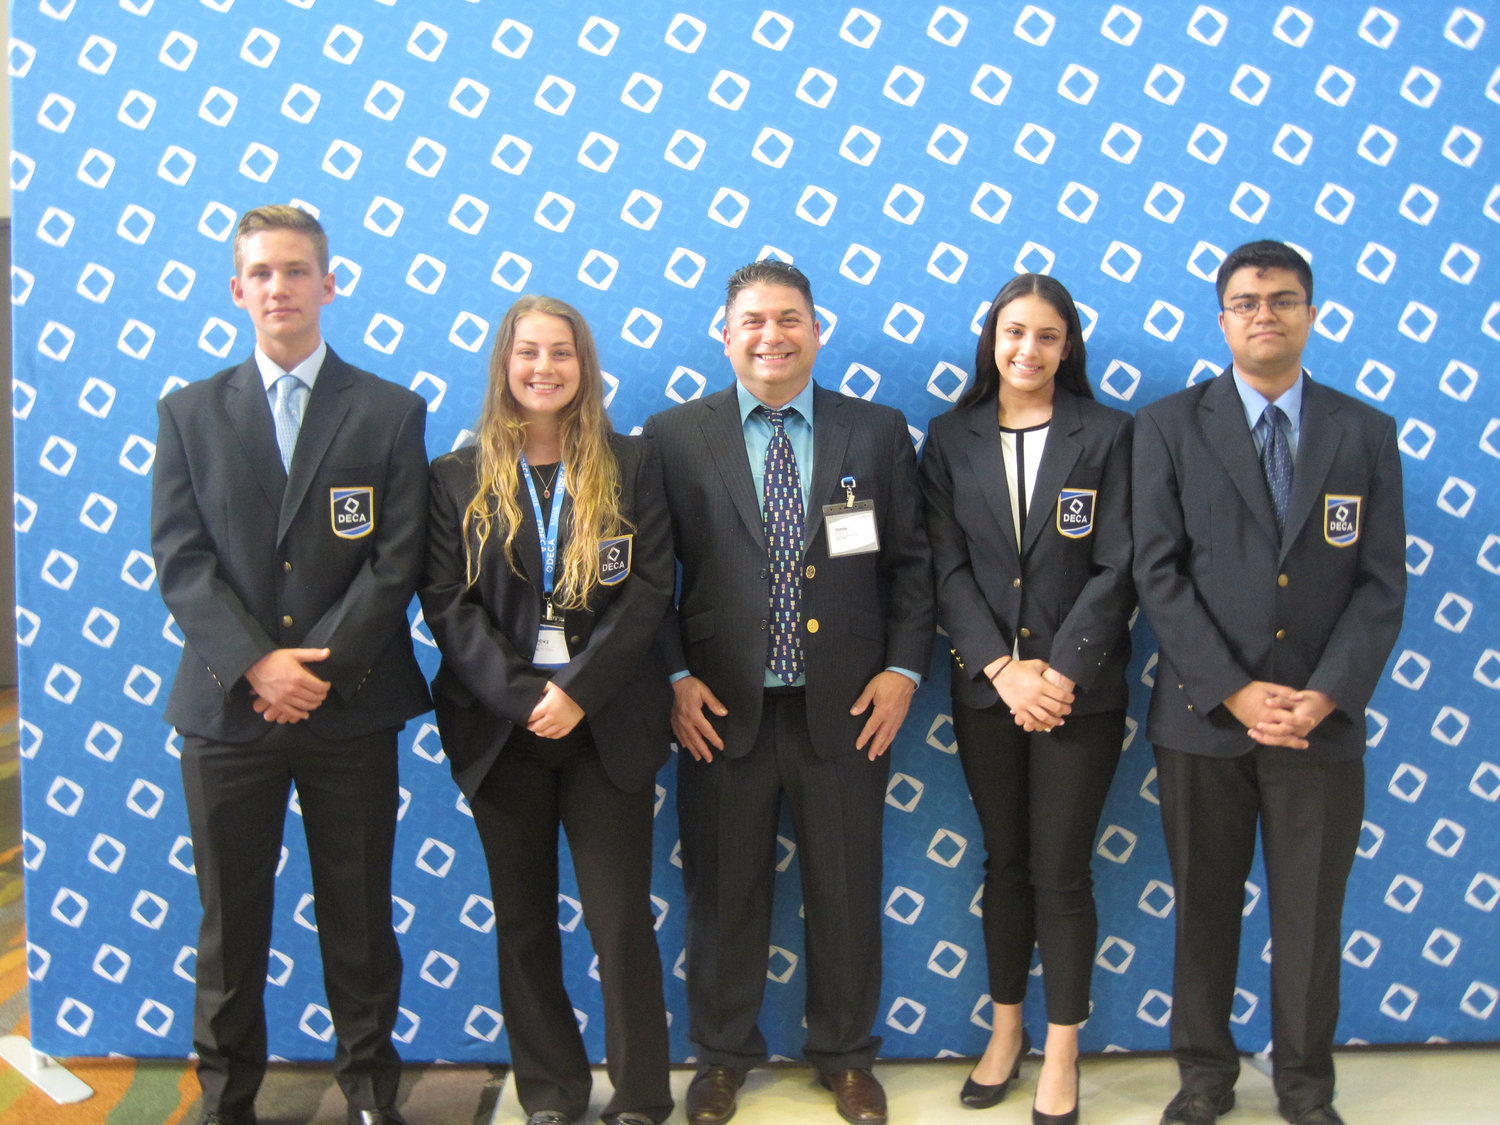 Orlando, Fla. Hosted the international DECA competition where four Lawrence High students competed. From left were Luke Kirchner, Brook Kirchner, club adviser Mark Albin, Danielle Hance and Amil Virani.